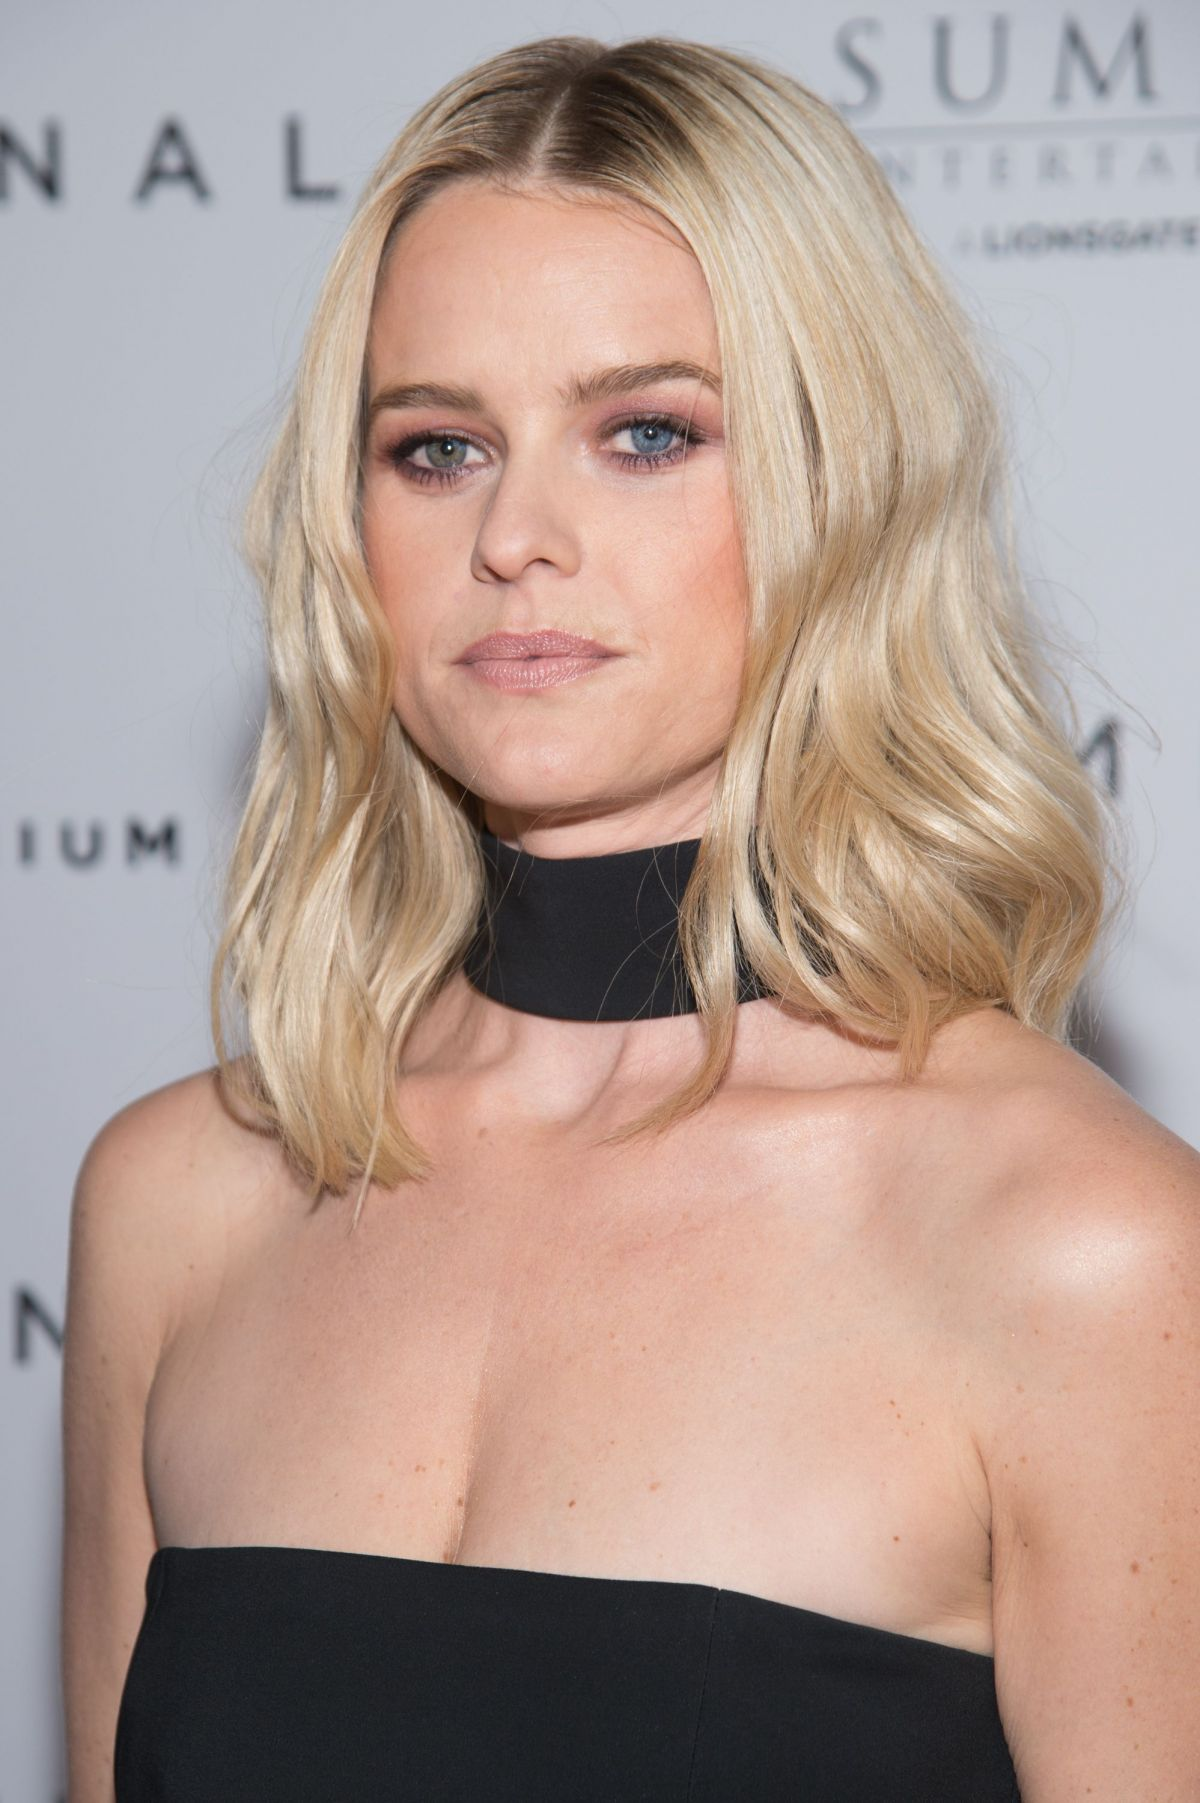 ALICE EVE at Criminal Premiere in New York 04/11/2016 - HawtCelebs